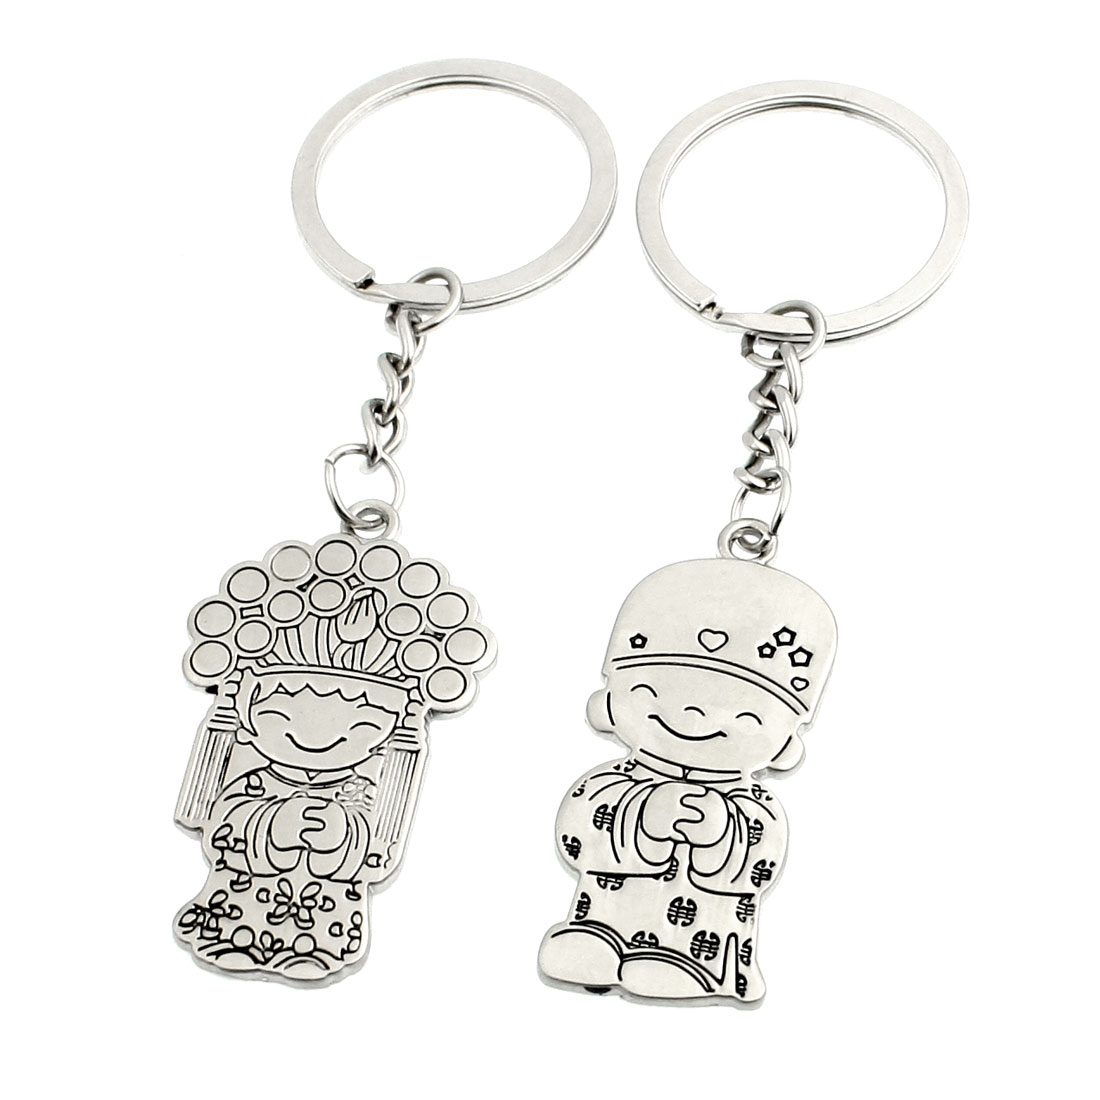 Pair Silver Tone Metal Cartoon Girl Boy Pendant Keyrings for Lovers